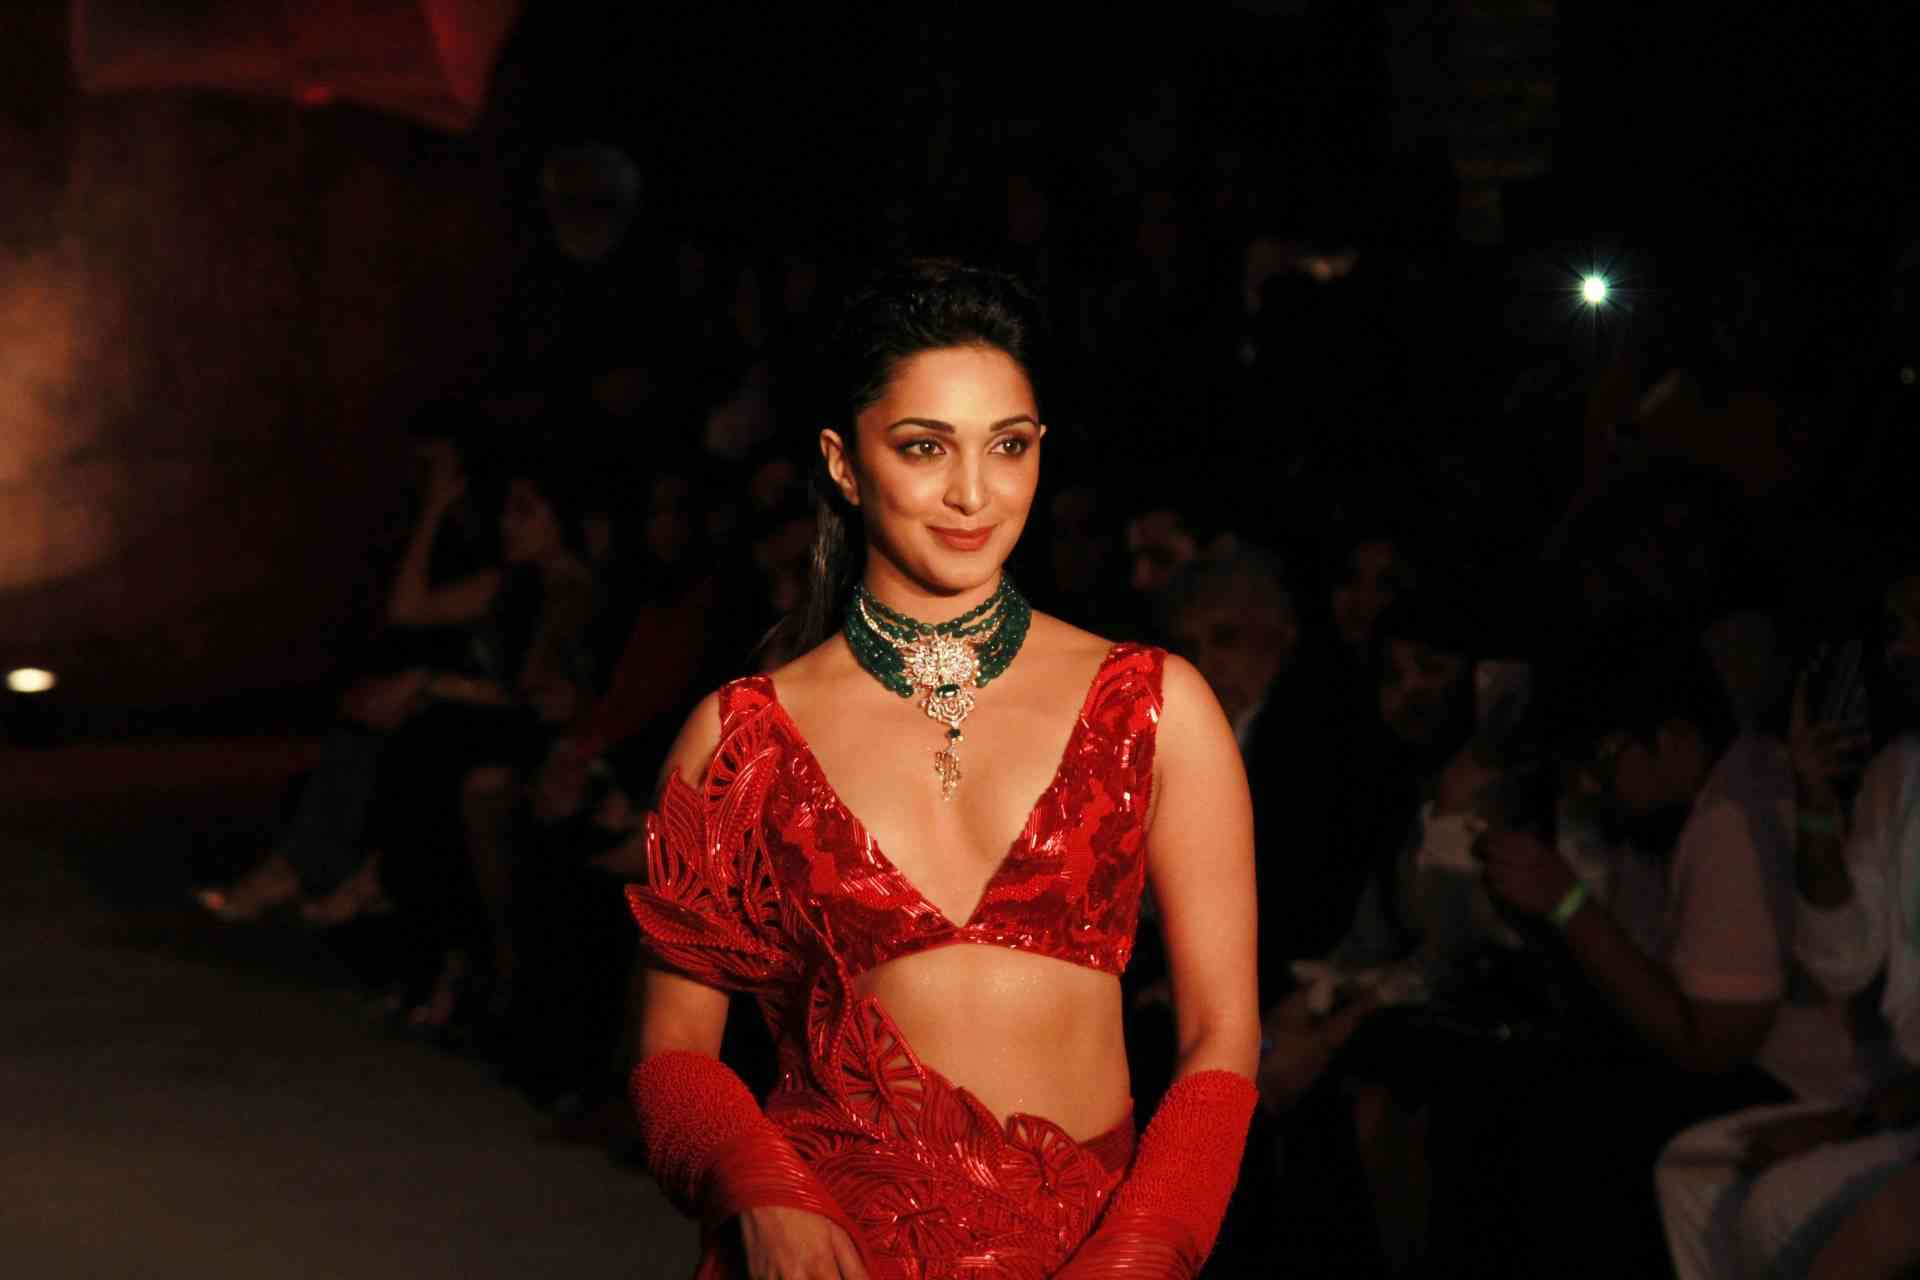 Amit Aggarwal, Amit Aggarwal show stopper, indianexpress.com, indianexpressnews, indianexpressonline, indianexpress, Amit Aggarwal designer, Amit Aggarwal latest, Amit Aggarwal India Couture Week, Amit Aggarwal show, Amit Aggarwal Lumen, Amit Aggarwal Kiara Advani,Kiara Advani pics, Kiara Advani photos, Kiara Advani pictures, Kiara Advani latest, Kiara Advani latest, Kiara Advani style, Kiara Advani celeb,Kiara Advani fashion, Kiara Advani in red, Kiara Advani shows, Kabir Singh Kiara Advani, Kiara Advani FASHION, Kiara Advani news, who is Kiara Advani, Kiara Advani MS DHONI, celeb style,